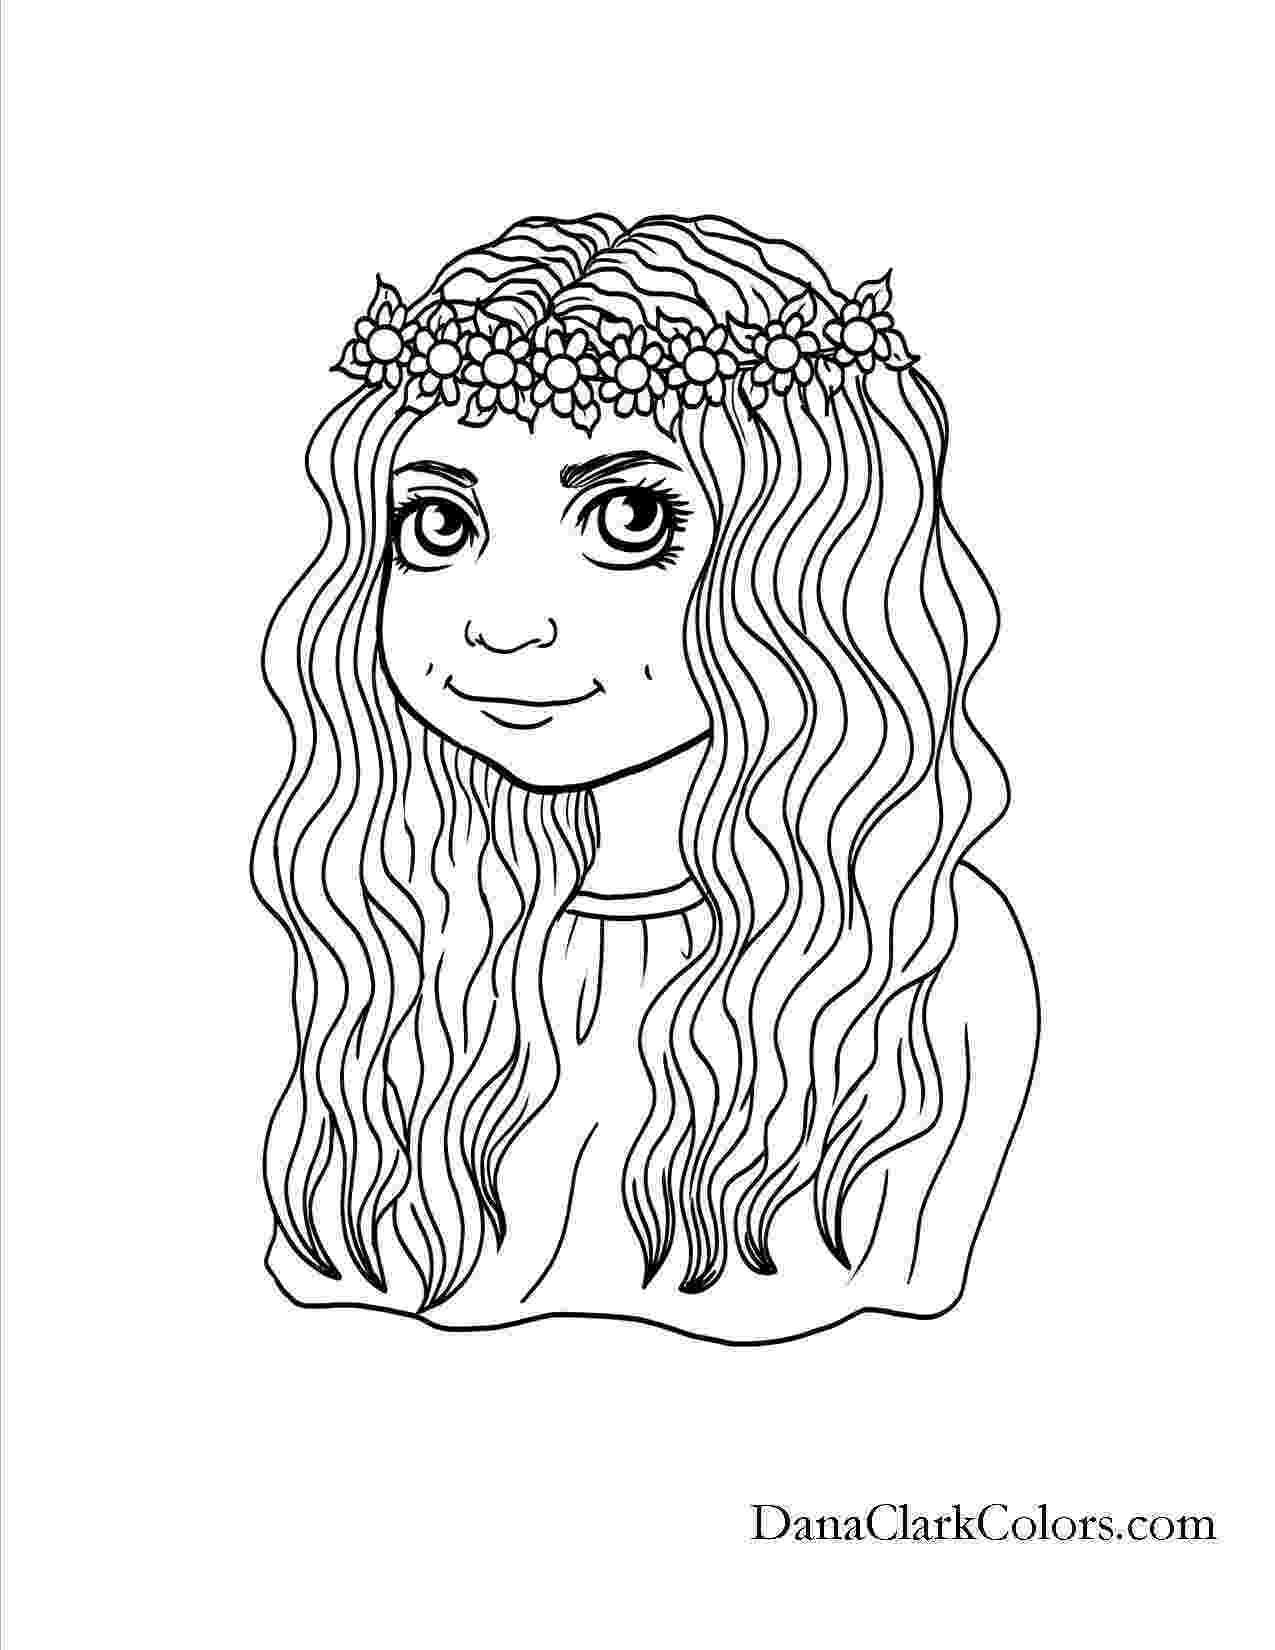 hair dying ideas hairstyle coloring pages new hairstyles coloring pages ideas dying hair